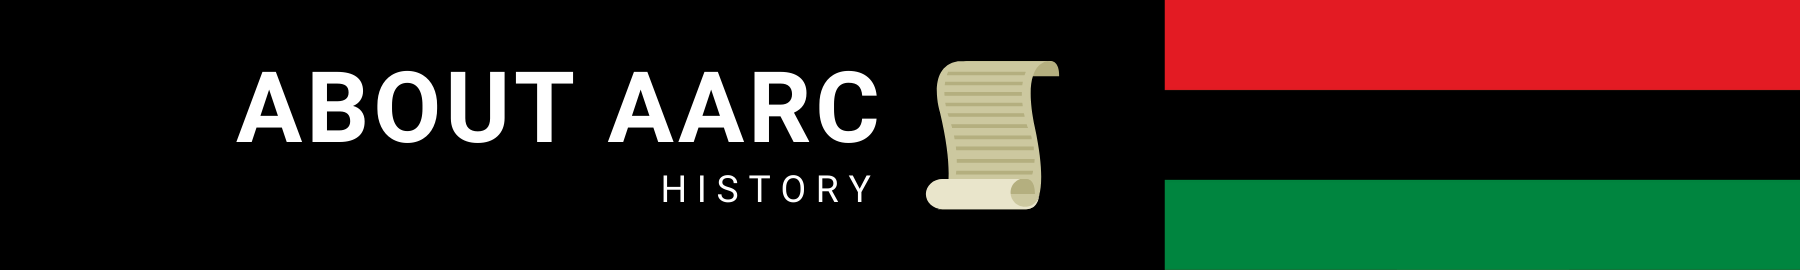 About AARC History Banner